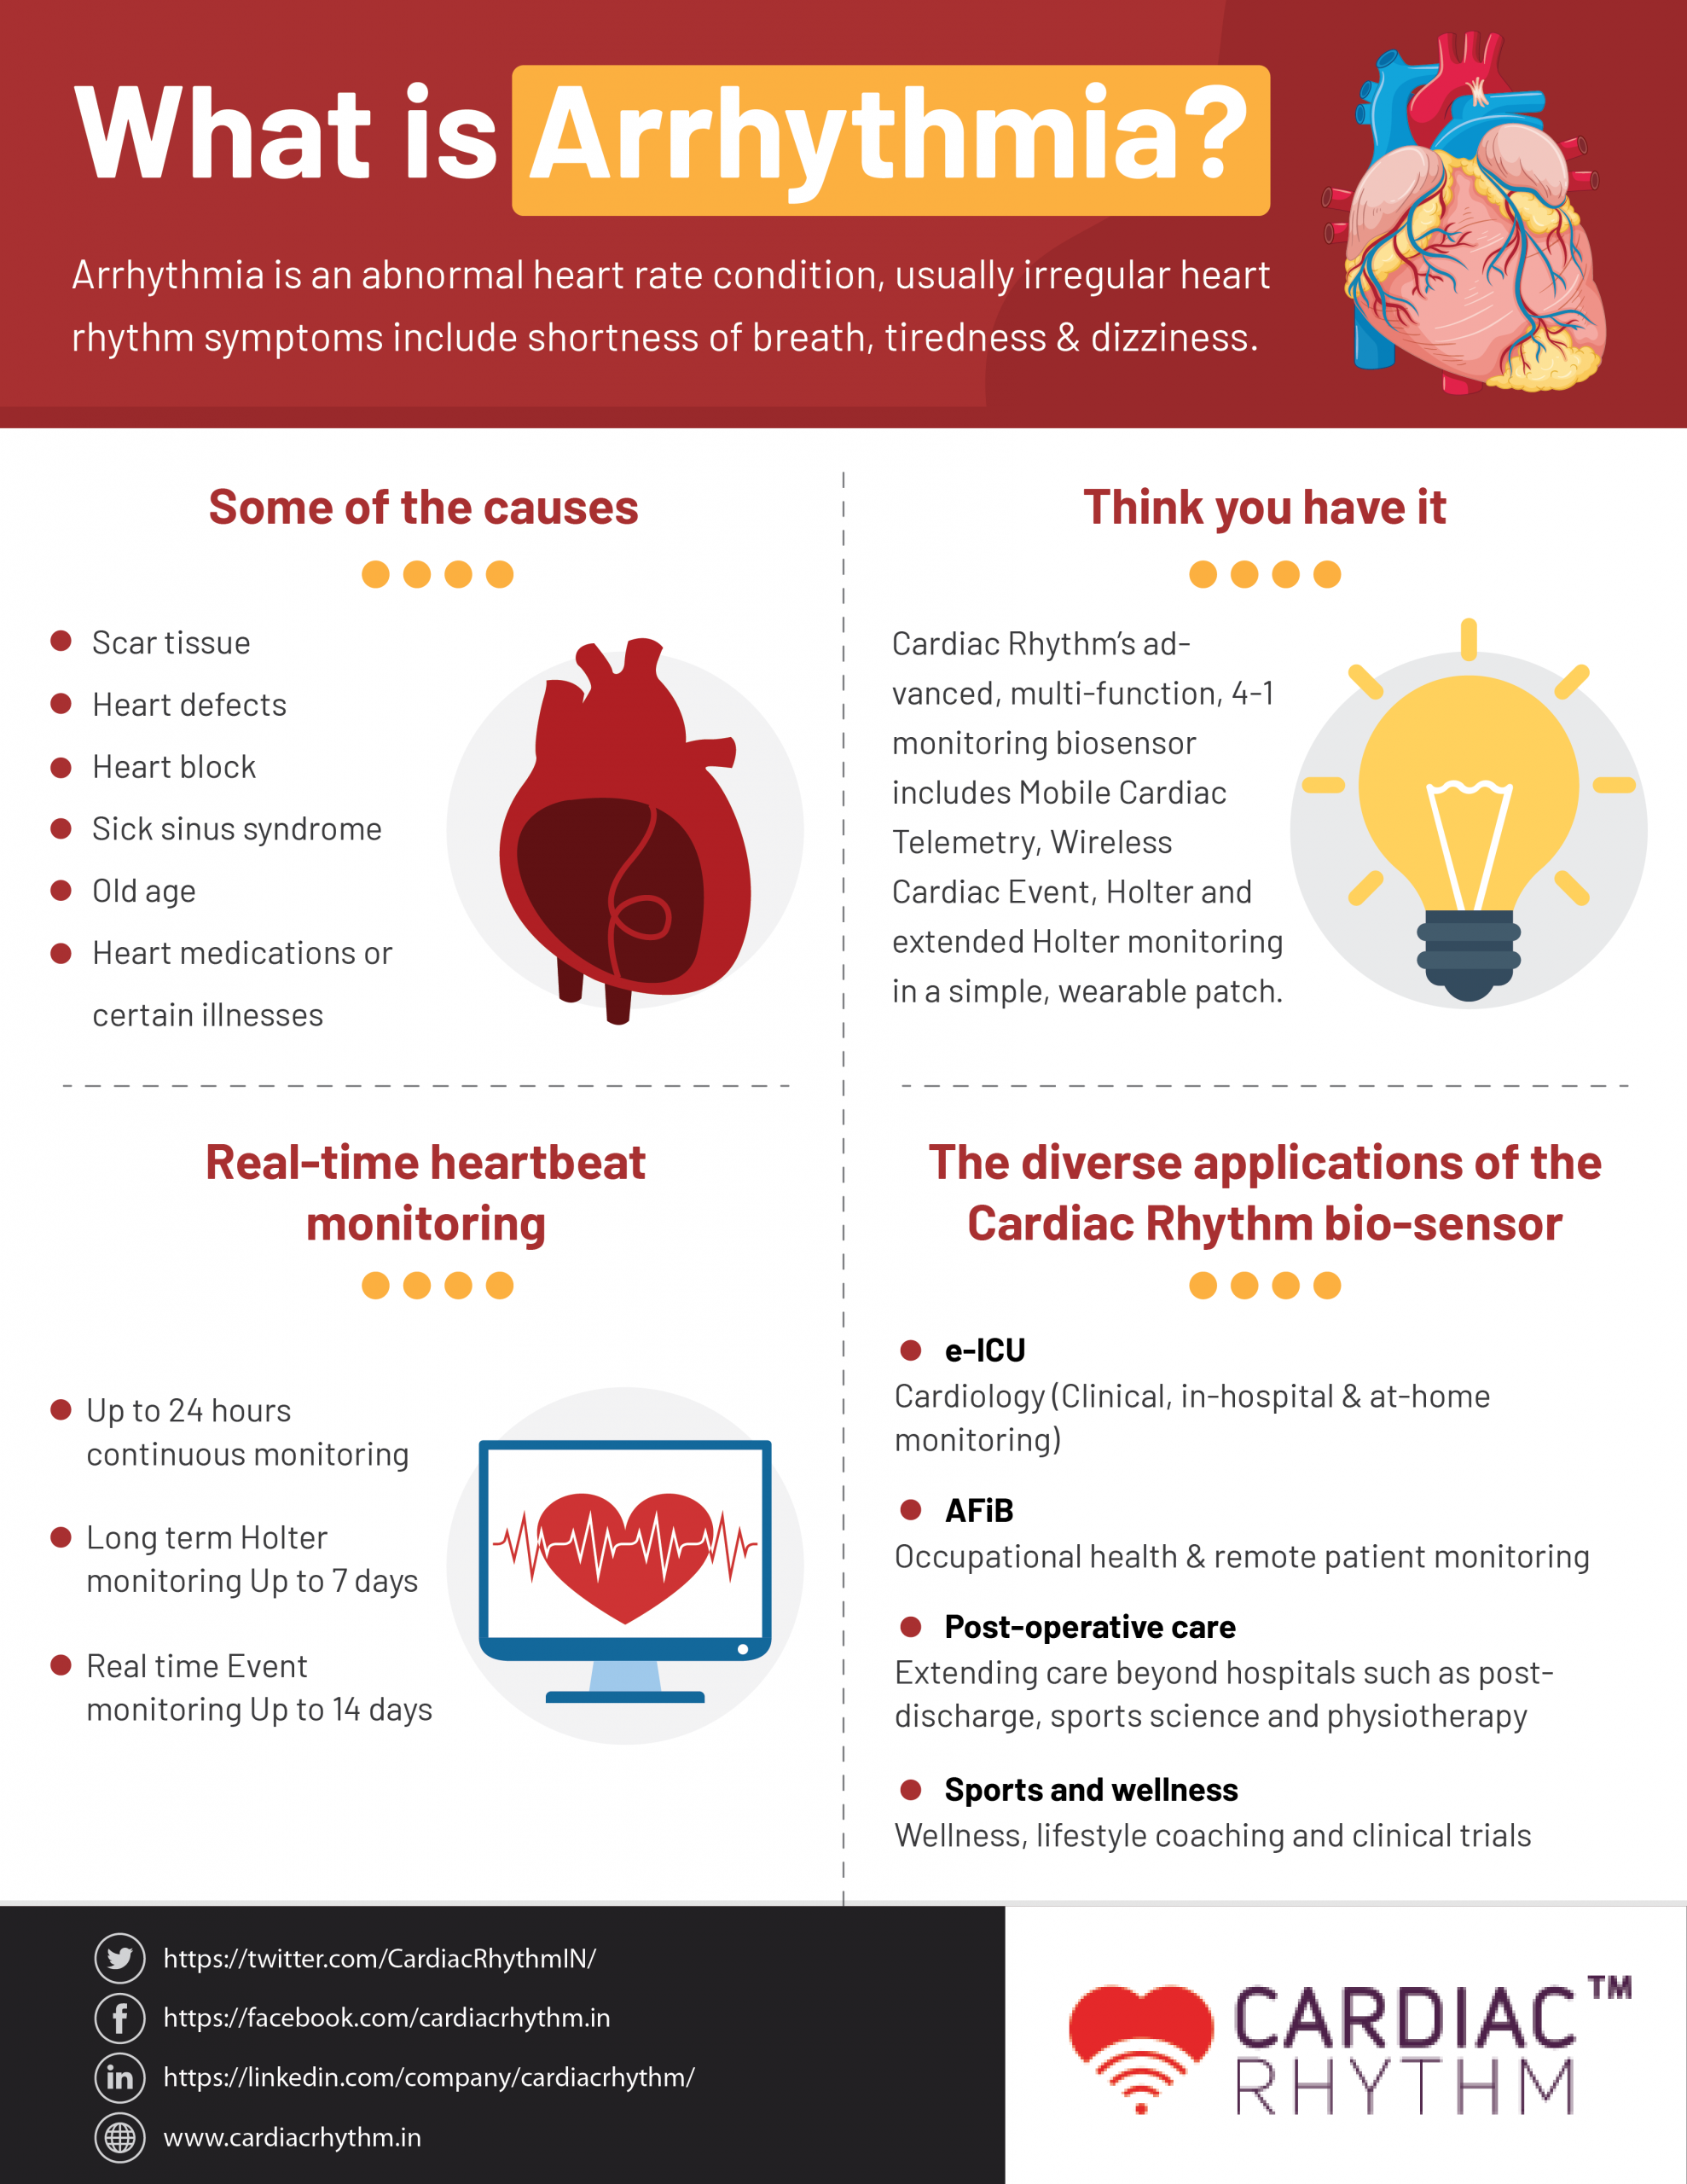 What is Arrhythmia?